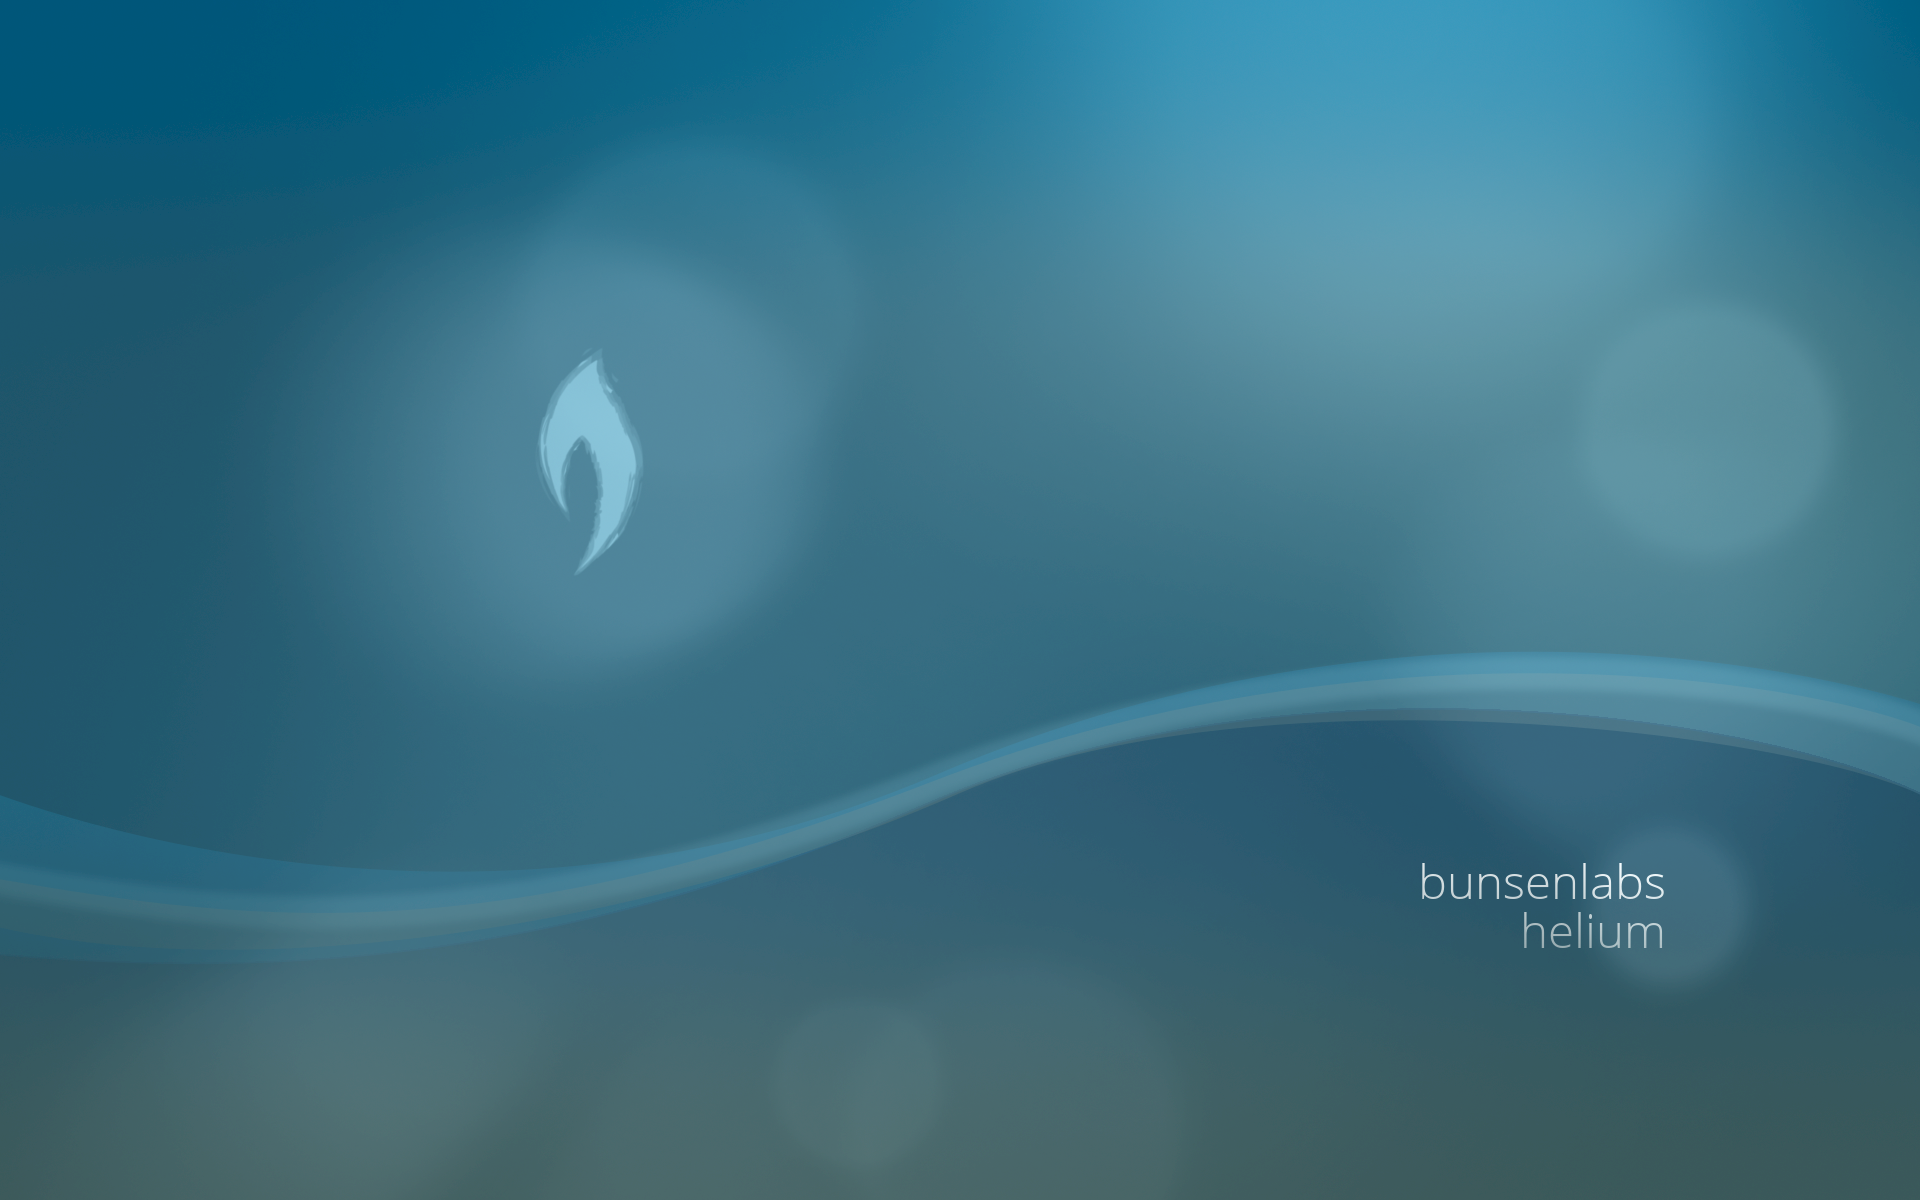 BunsenLabs Wave by capn-damo